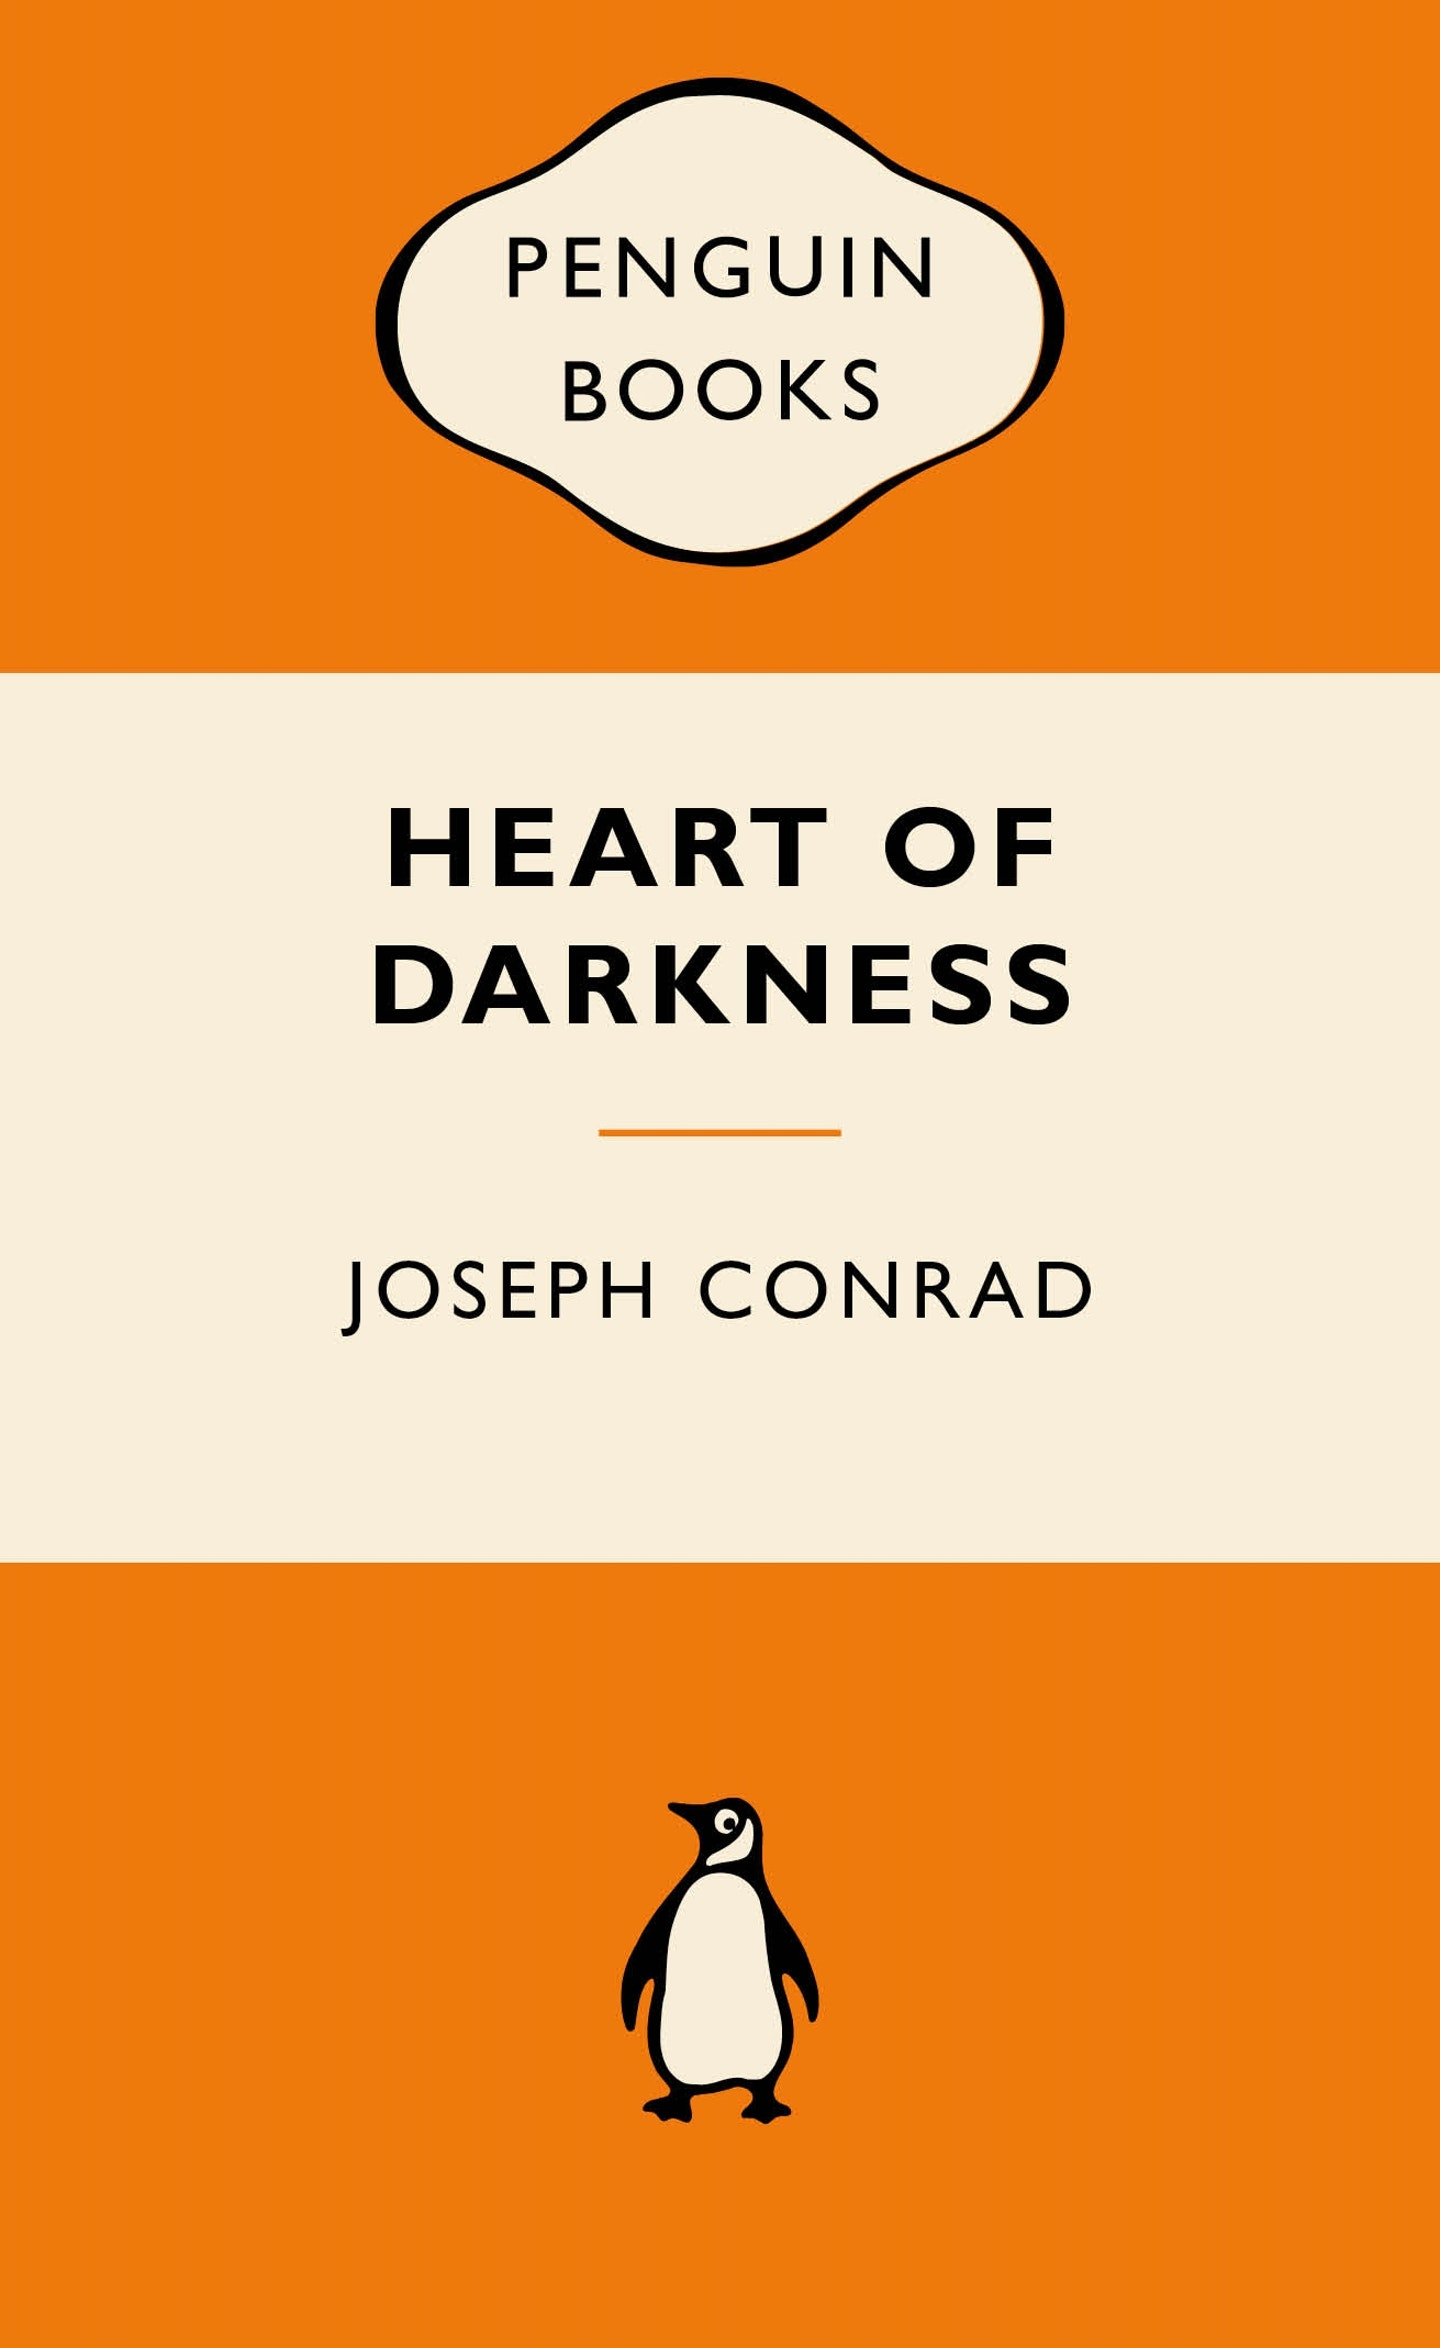 heart of darkness popular penguins penguin books